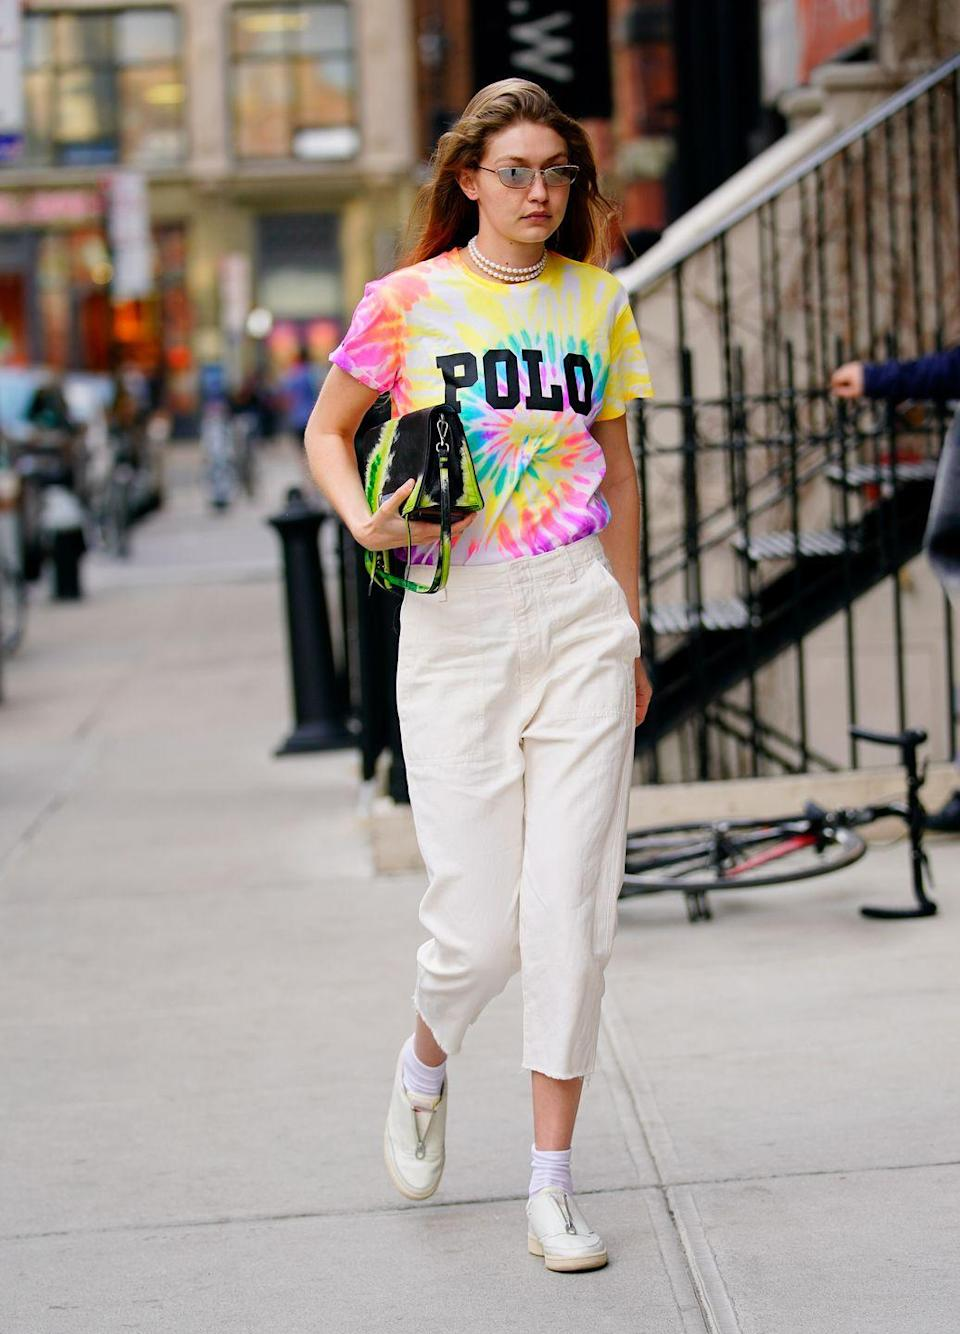 <p>Tie-dye is like a solid black and white stripe – it goes with anything in your closet (seriously, try it). Pair the multi-colored design with a printed skirt, cut-offs, or white jeans for the ultimate cool-girl look. </p>